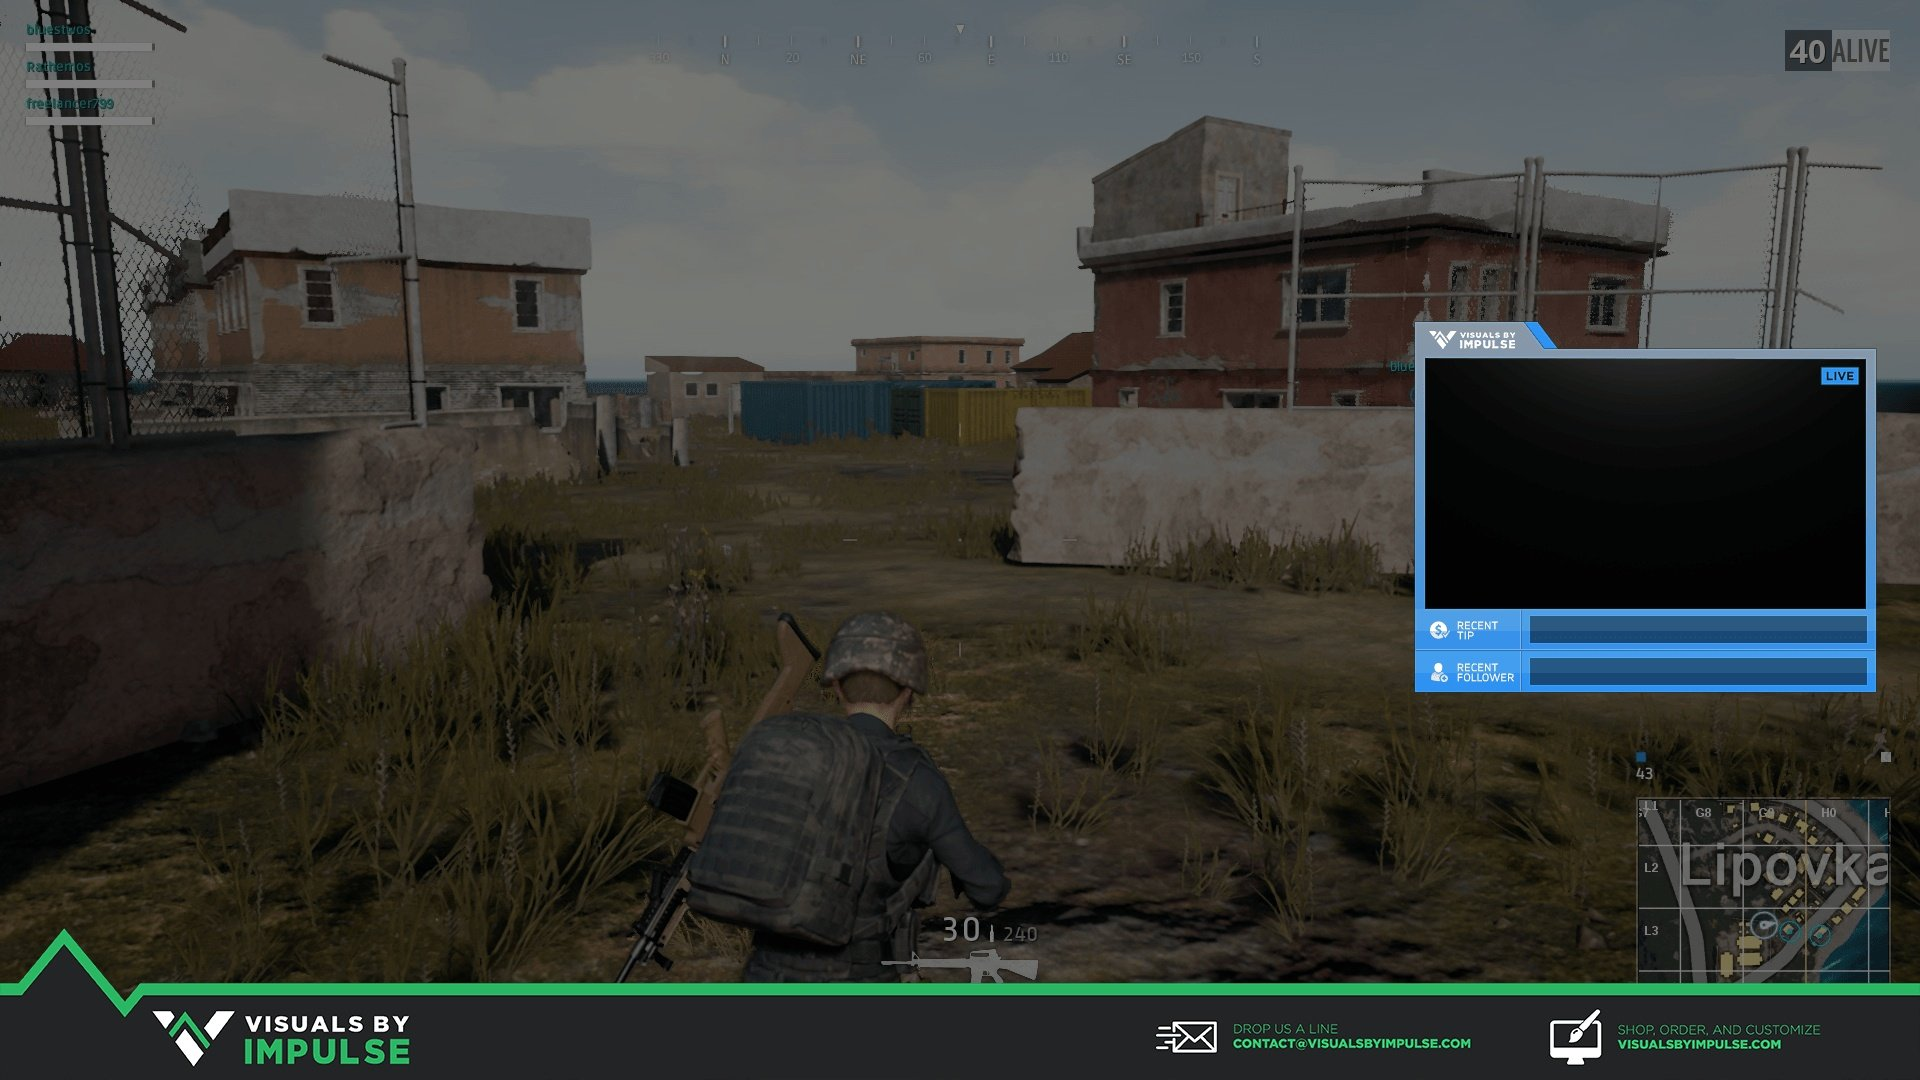 Supercharged Twitch Overlay - Visuals by Impulse